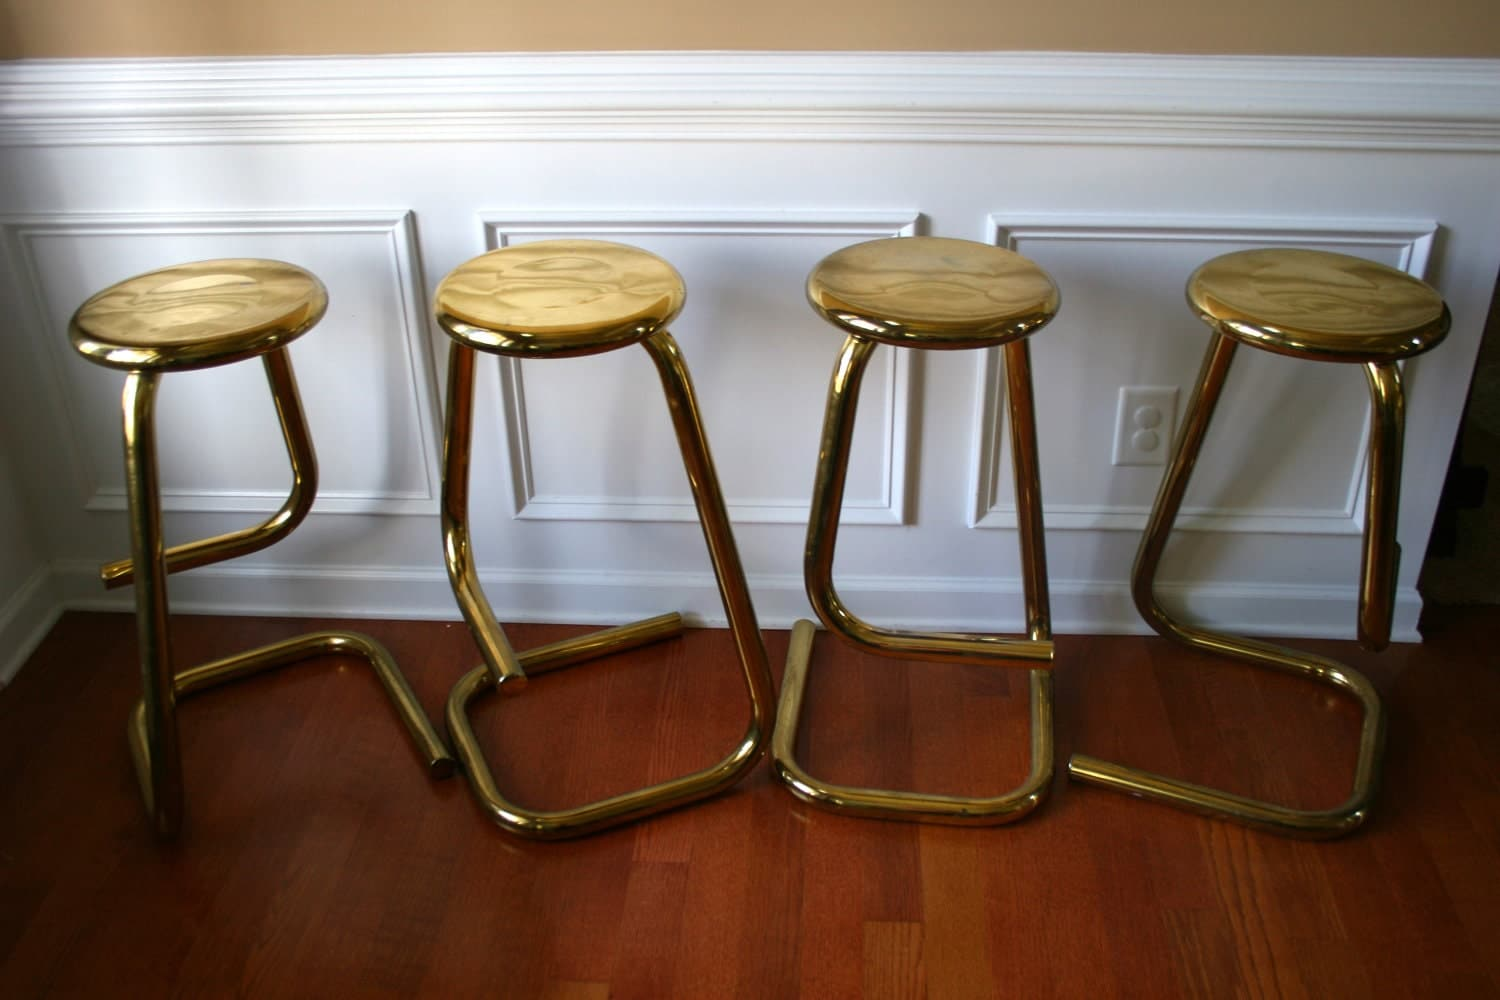 Vintage brass stools counter bar eclectic home